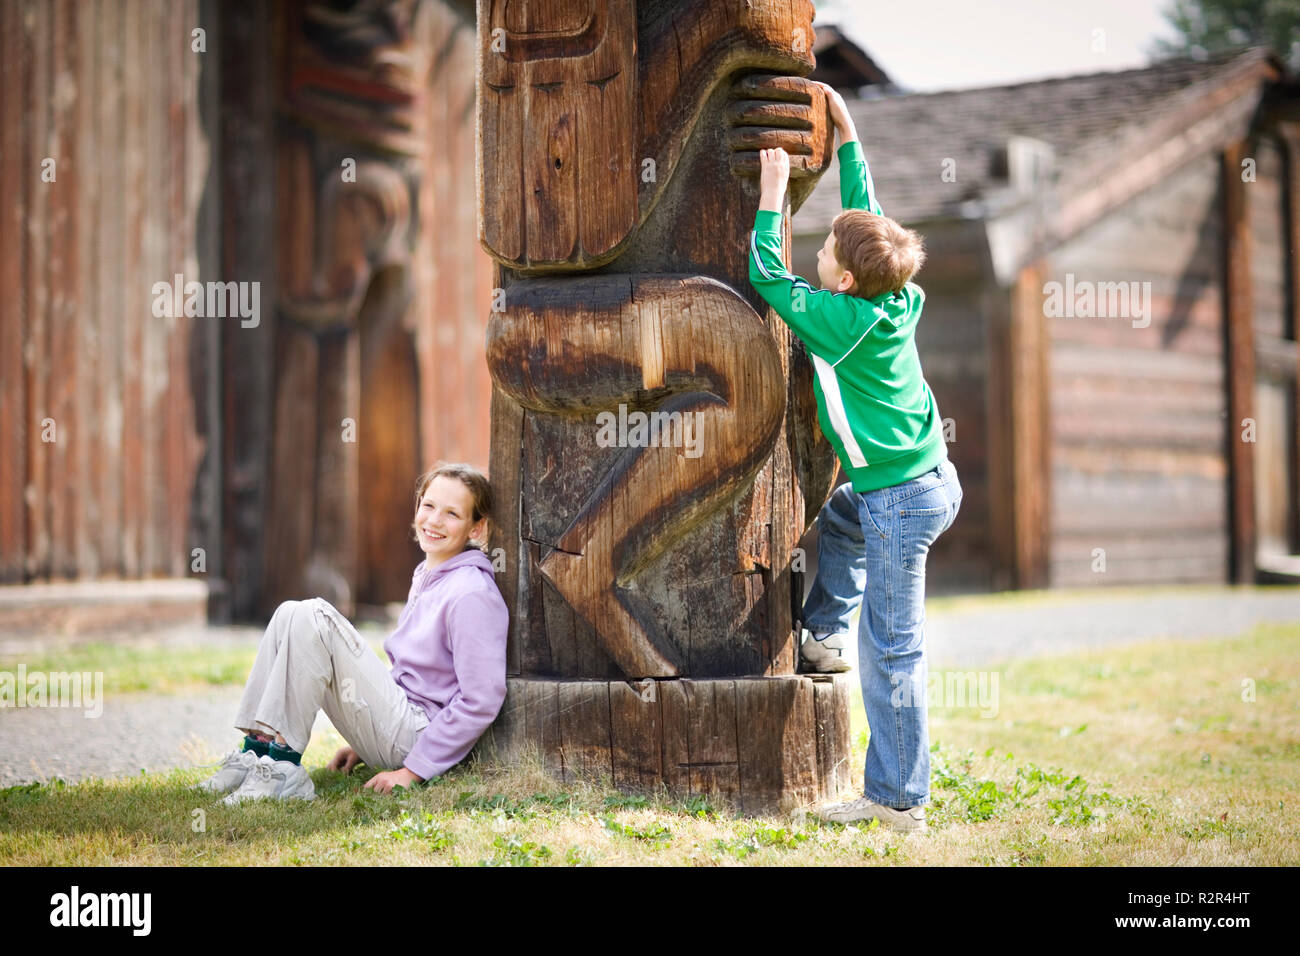 Two children next to a totem pole. - Stock Image